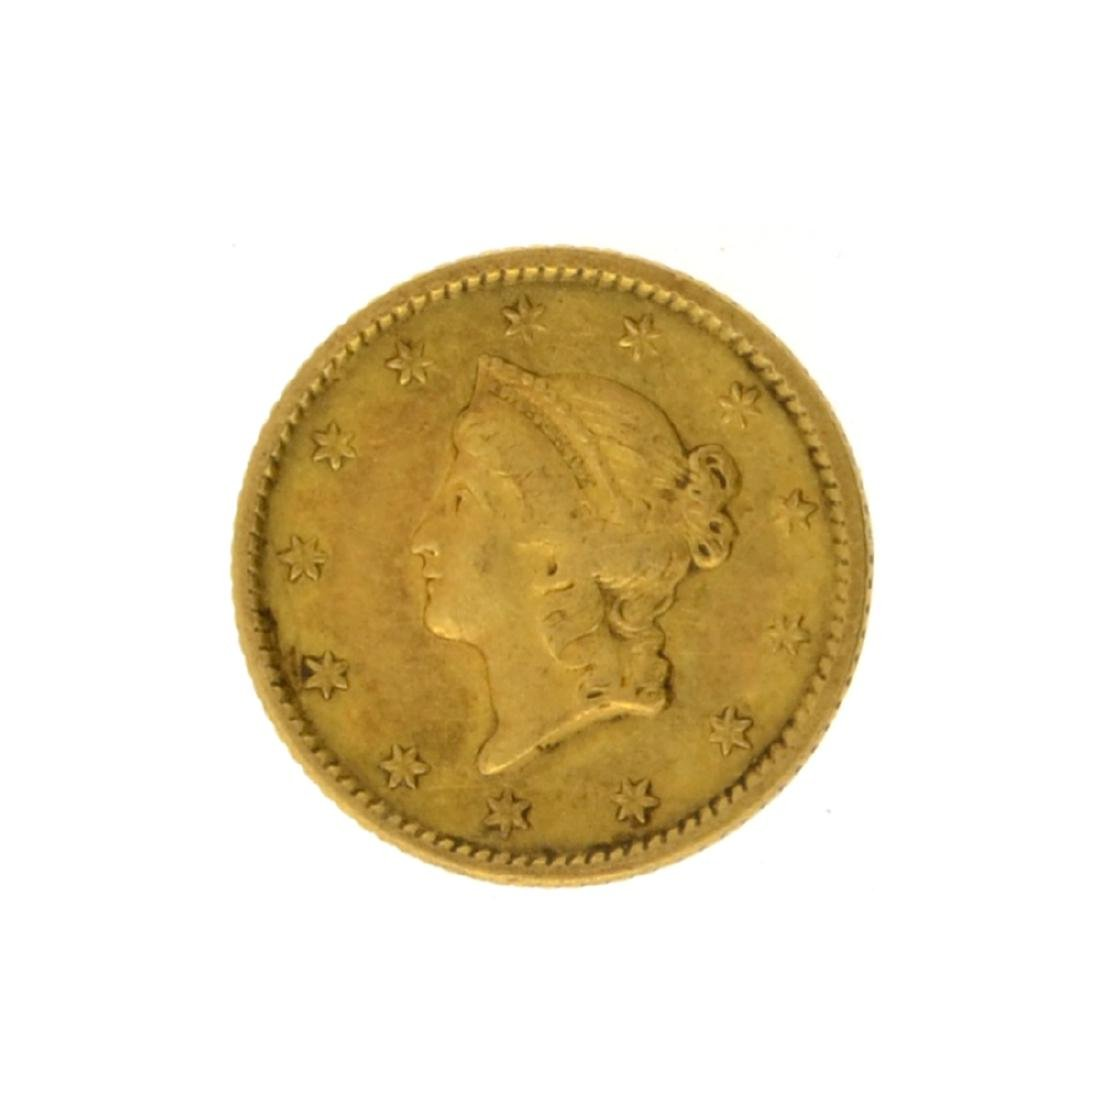 1851 $1 Liberty Head Gold Coin